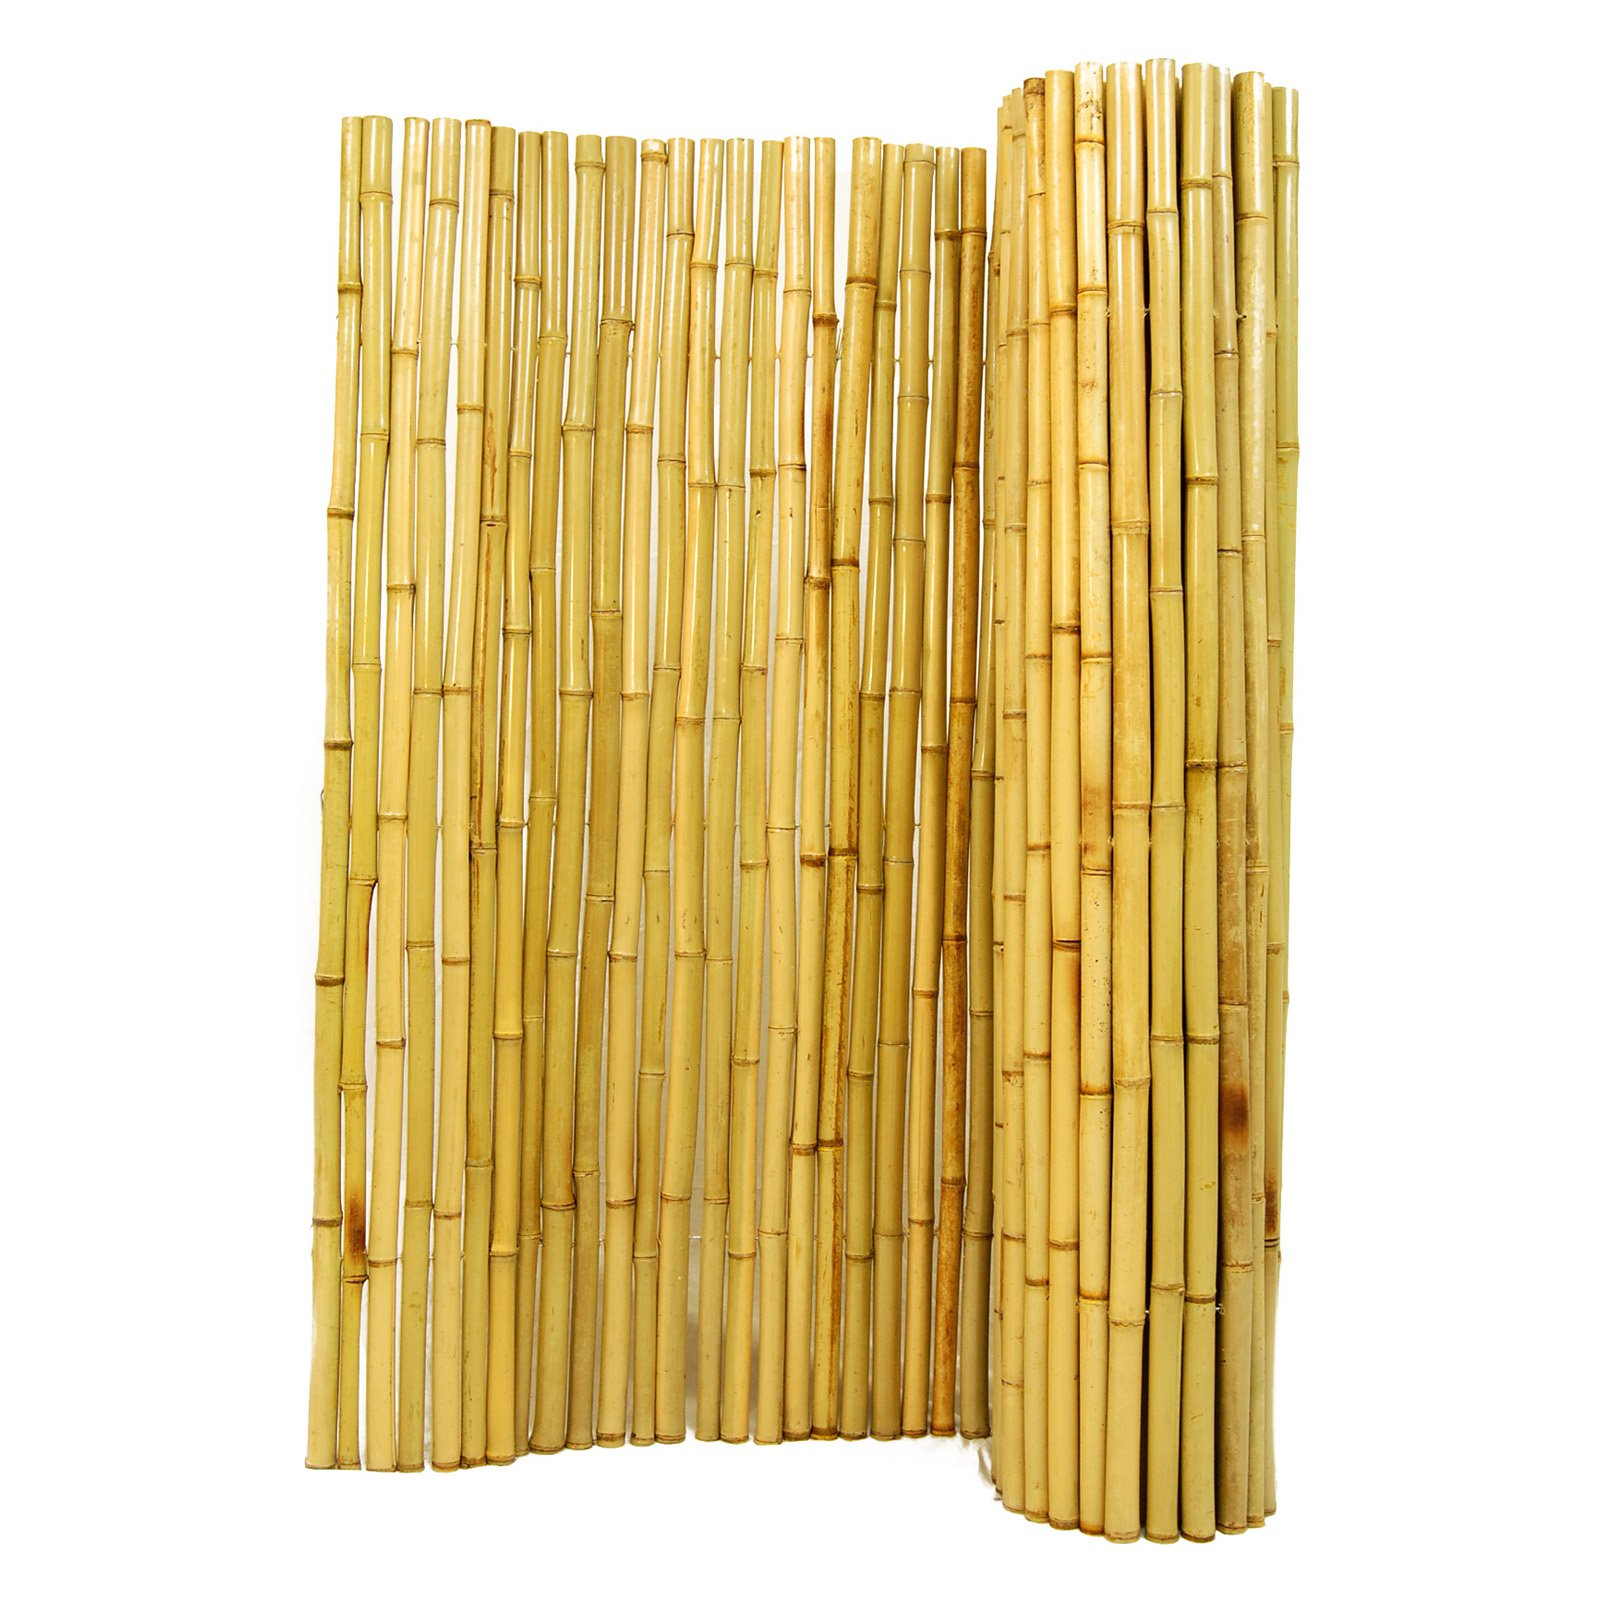 Forever Bamboo 1 in. Natural Rolled Bamboo Fence by